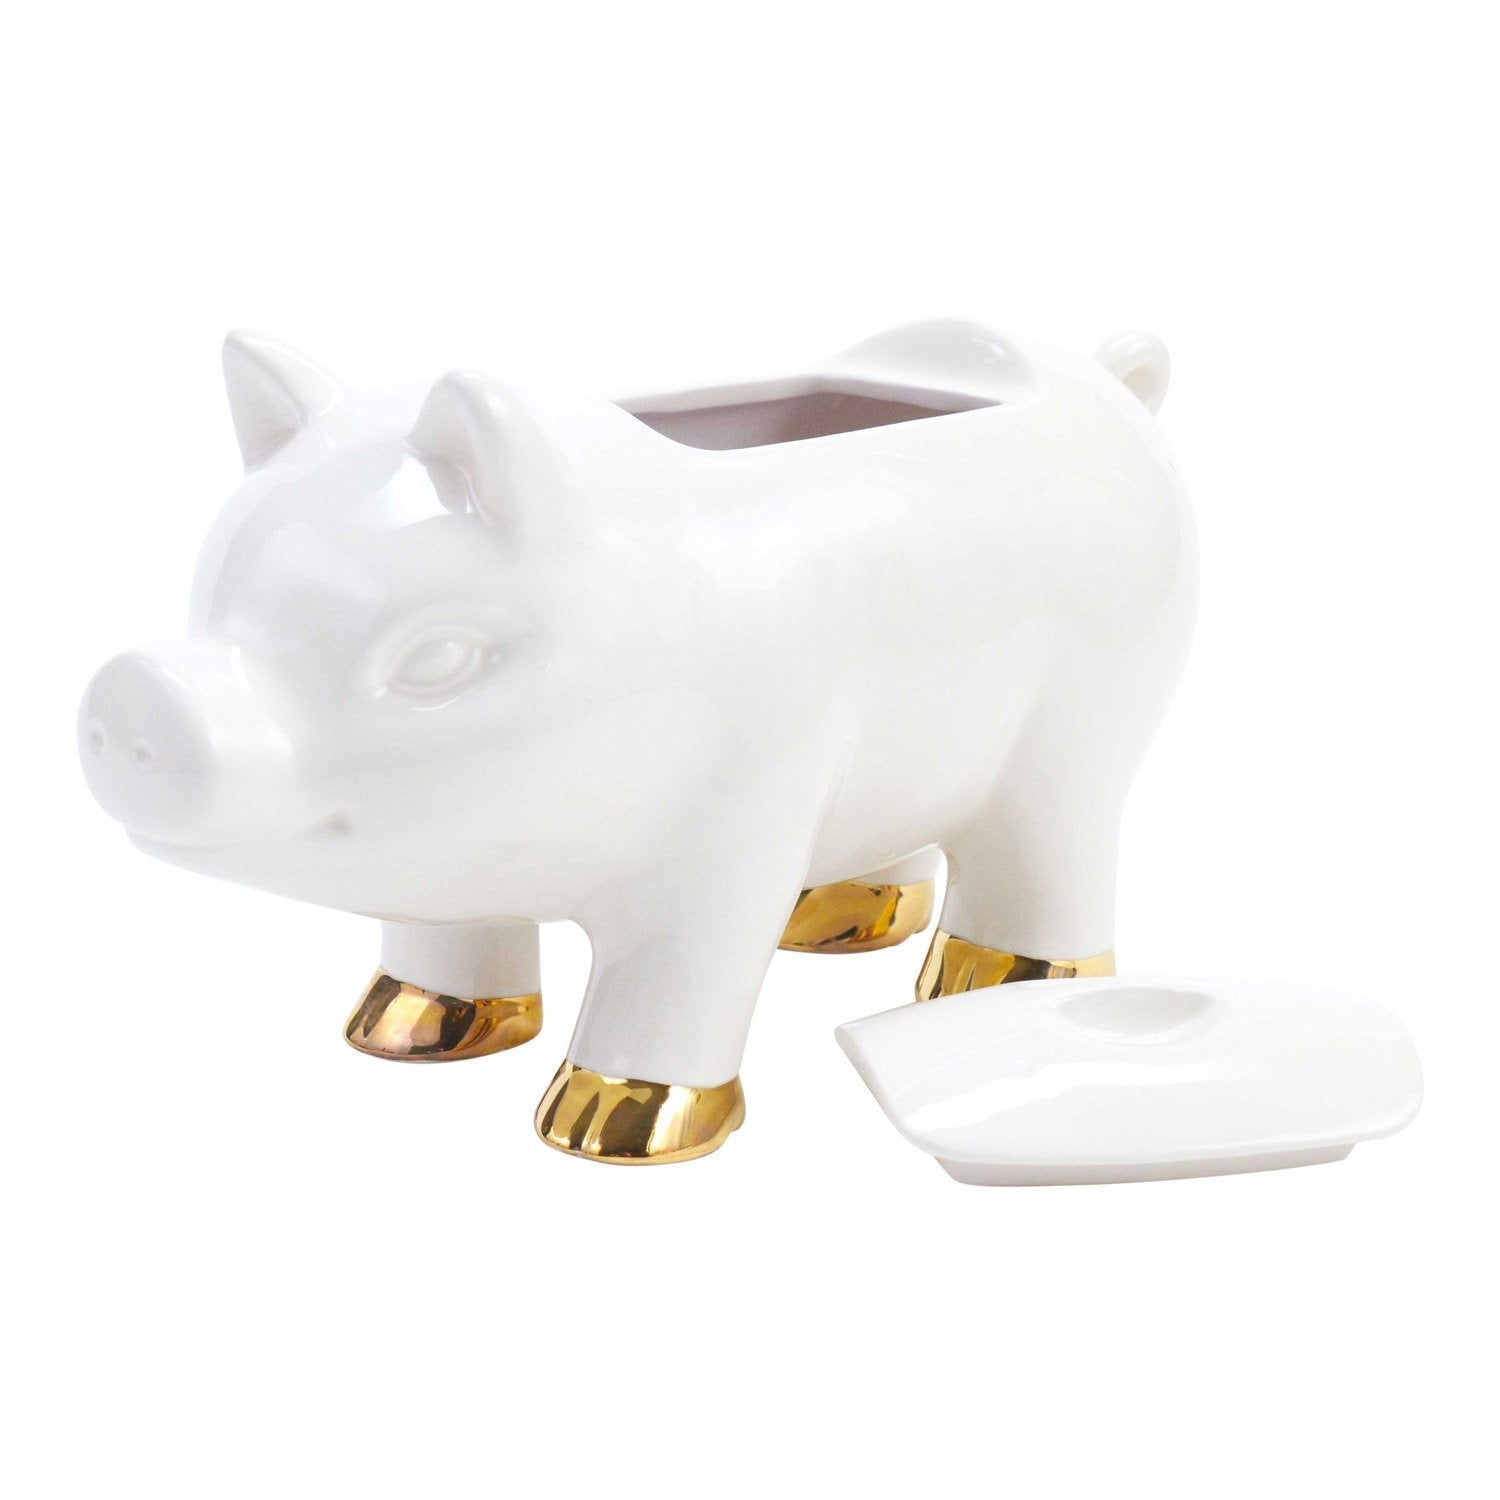 Hallmark Home Pig Cookie Jar with Lid, White and Gold – Setauket Gifts